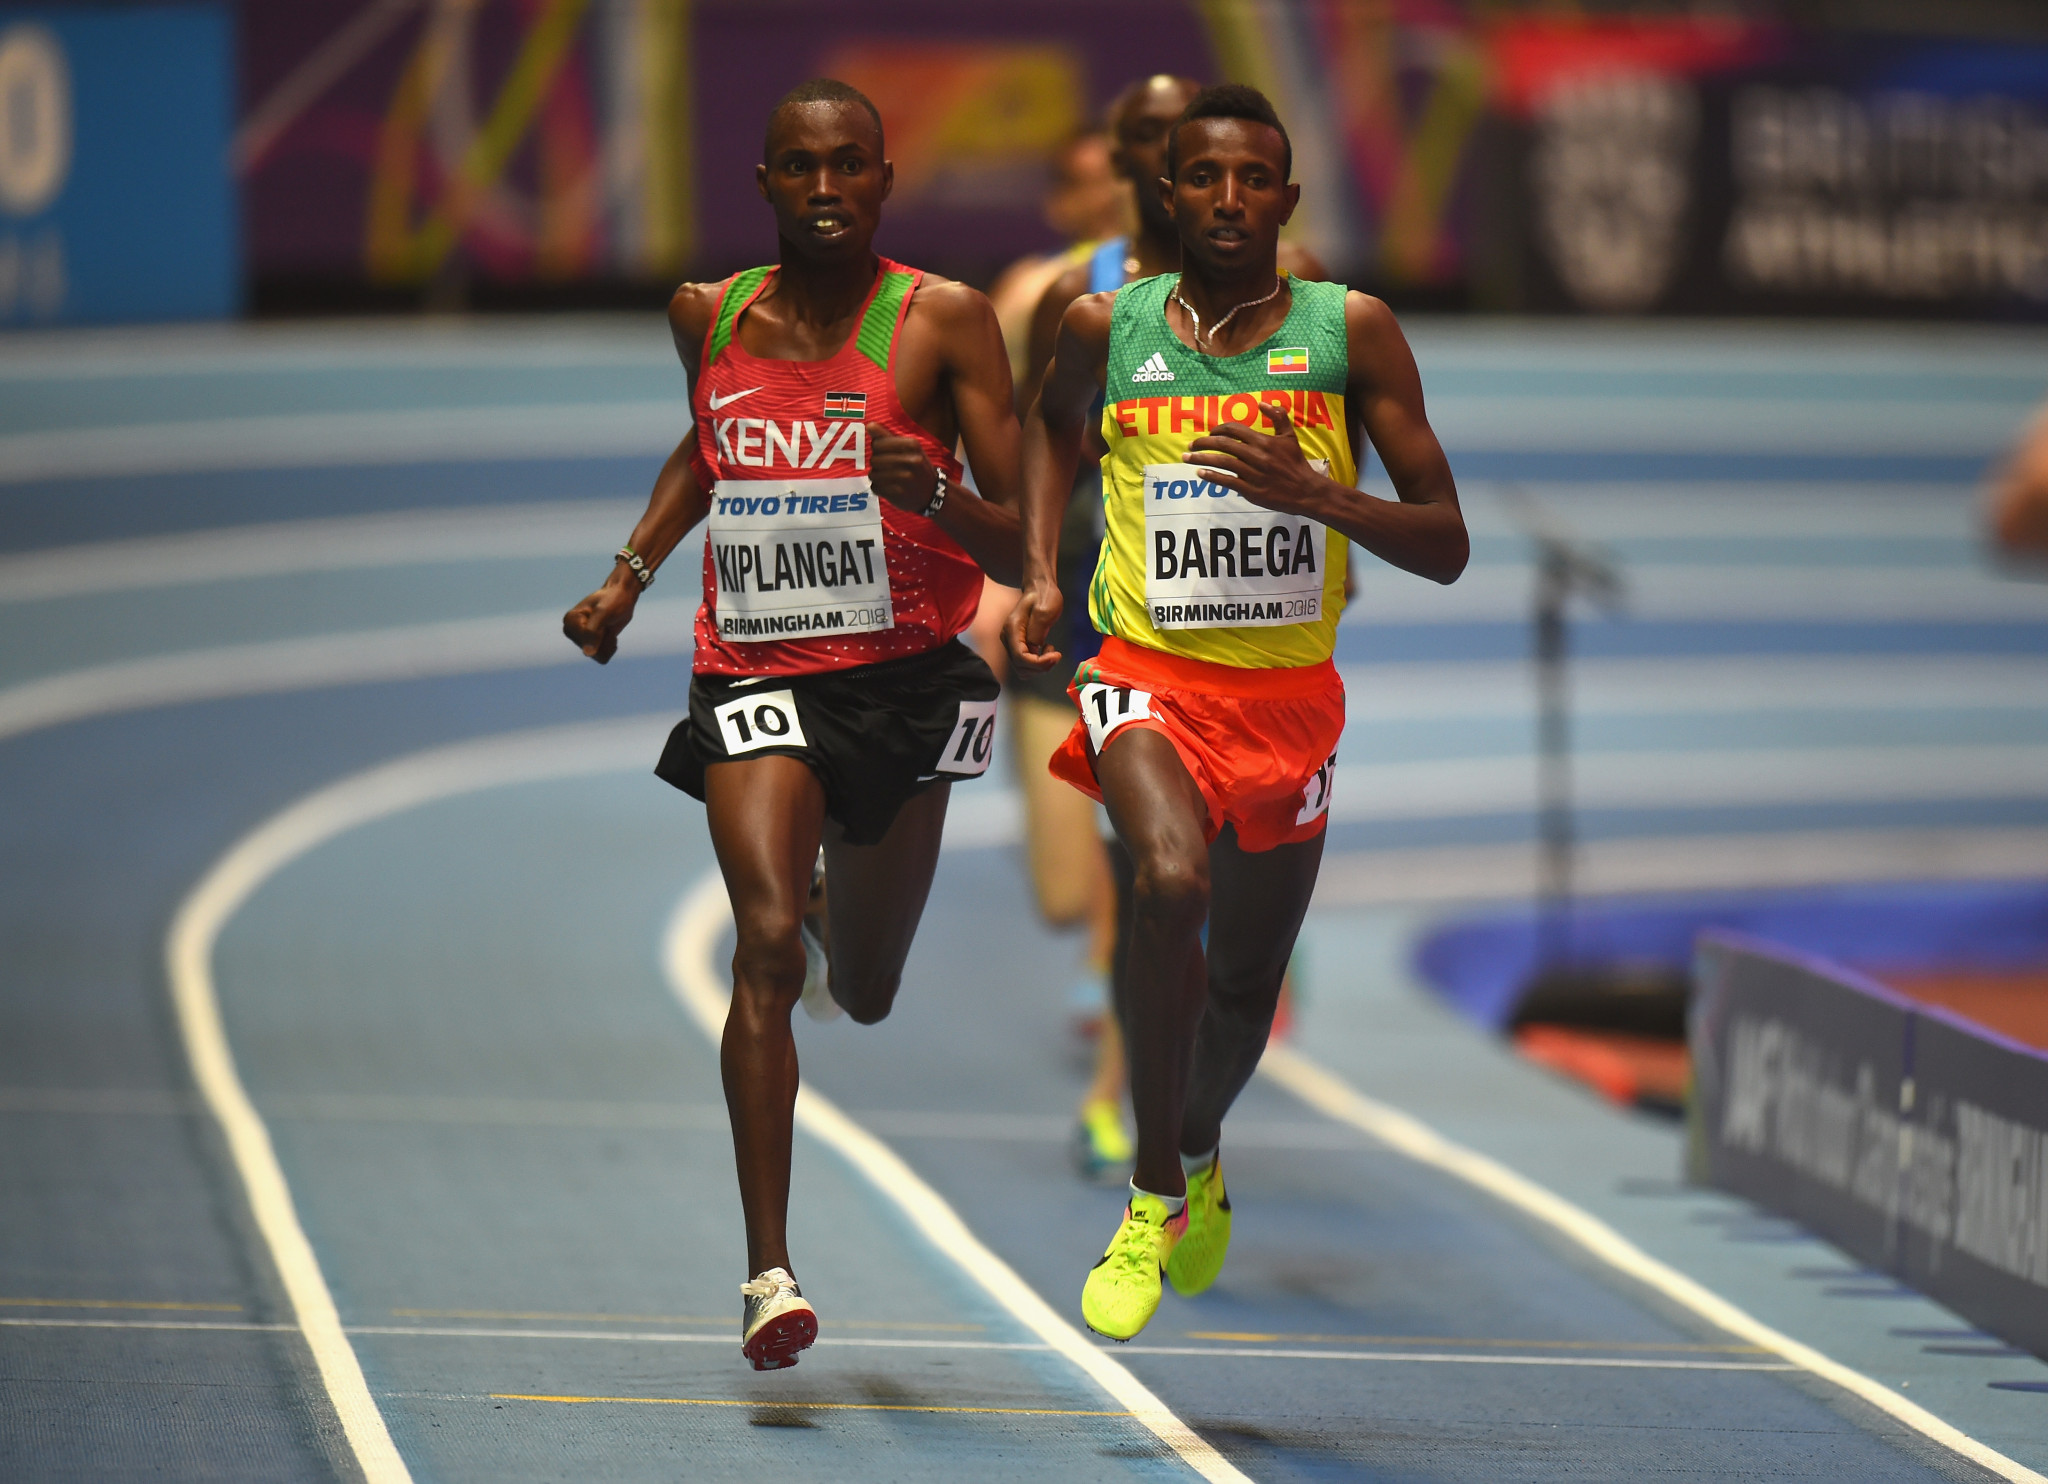 Selemon Barega, right, is among top athletes set to compete ©IAAF